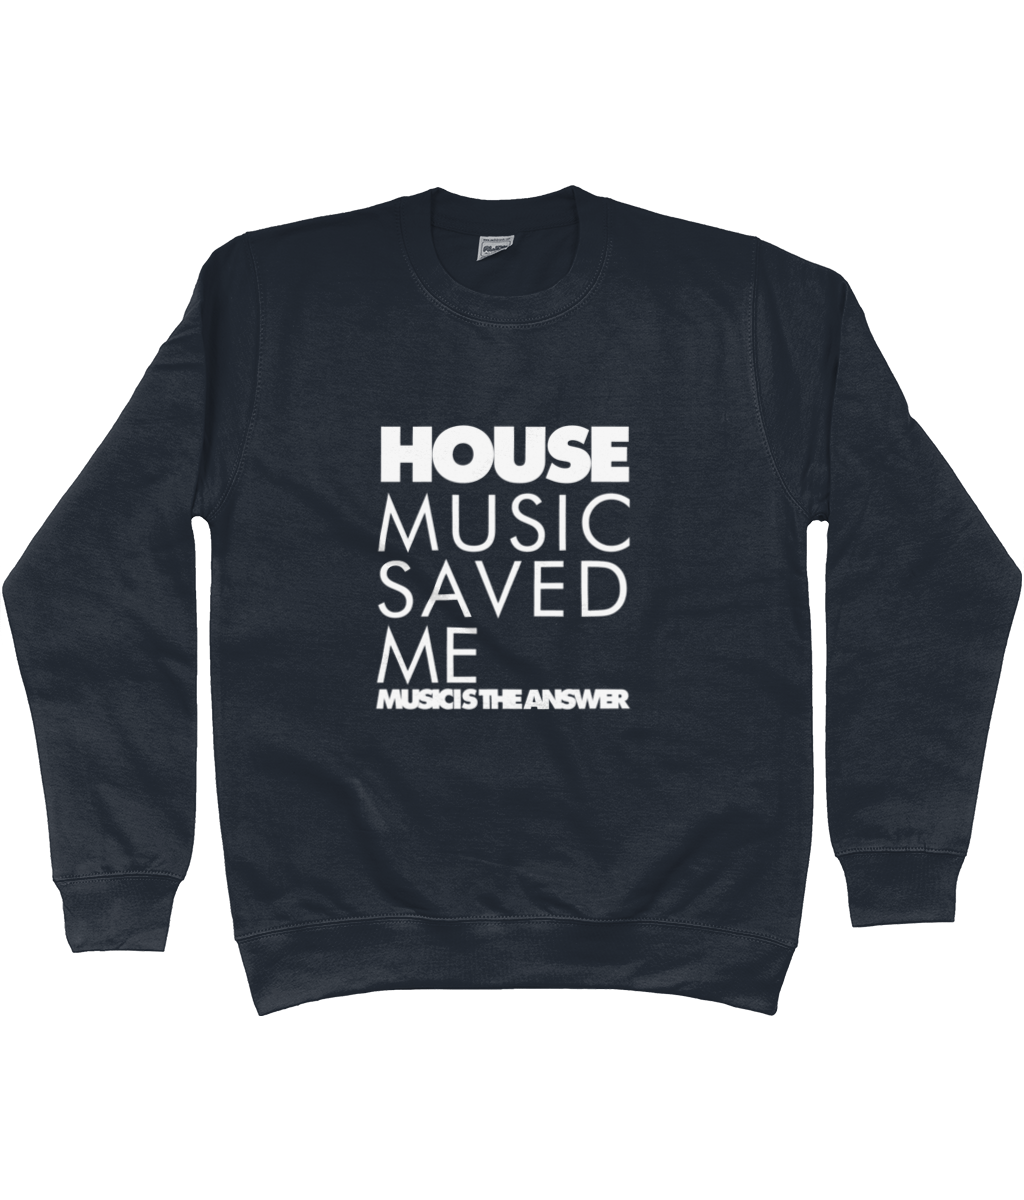 Sweatshirt Saved